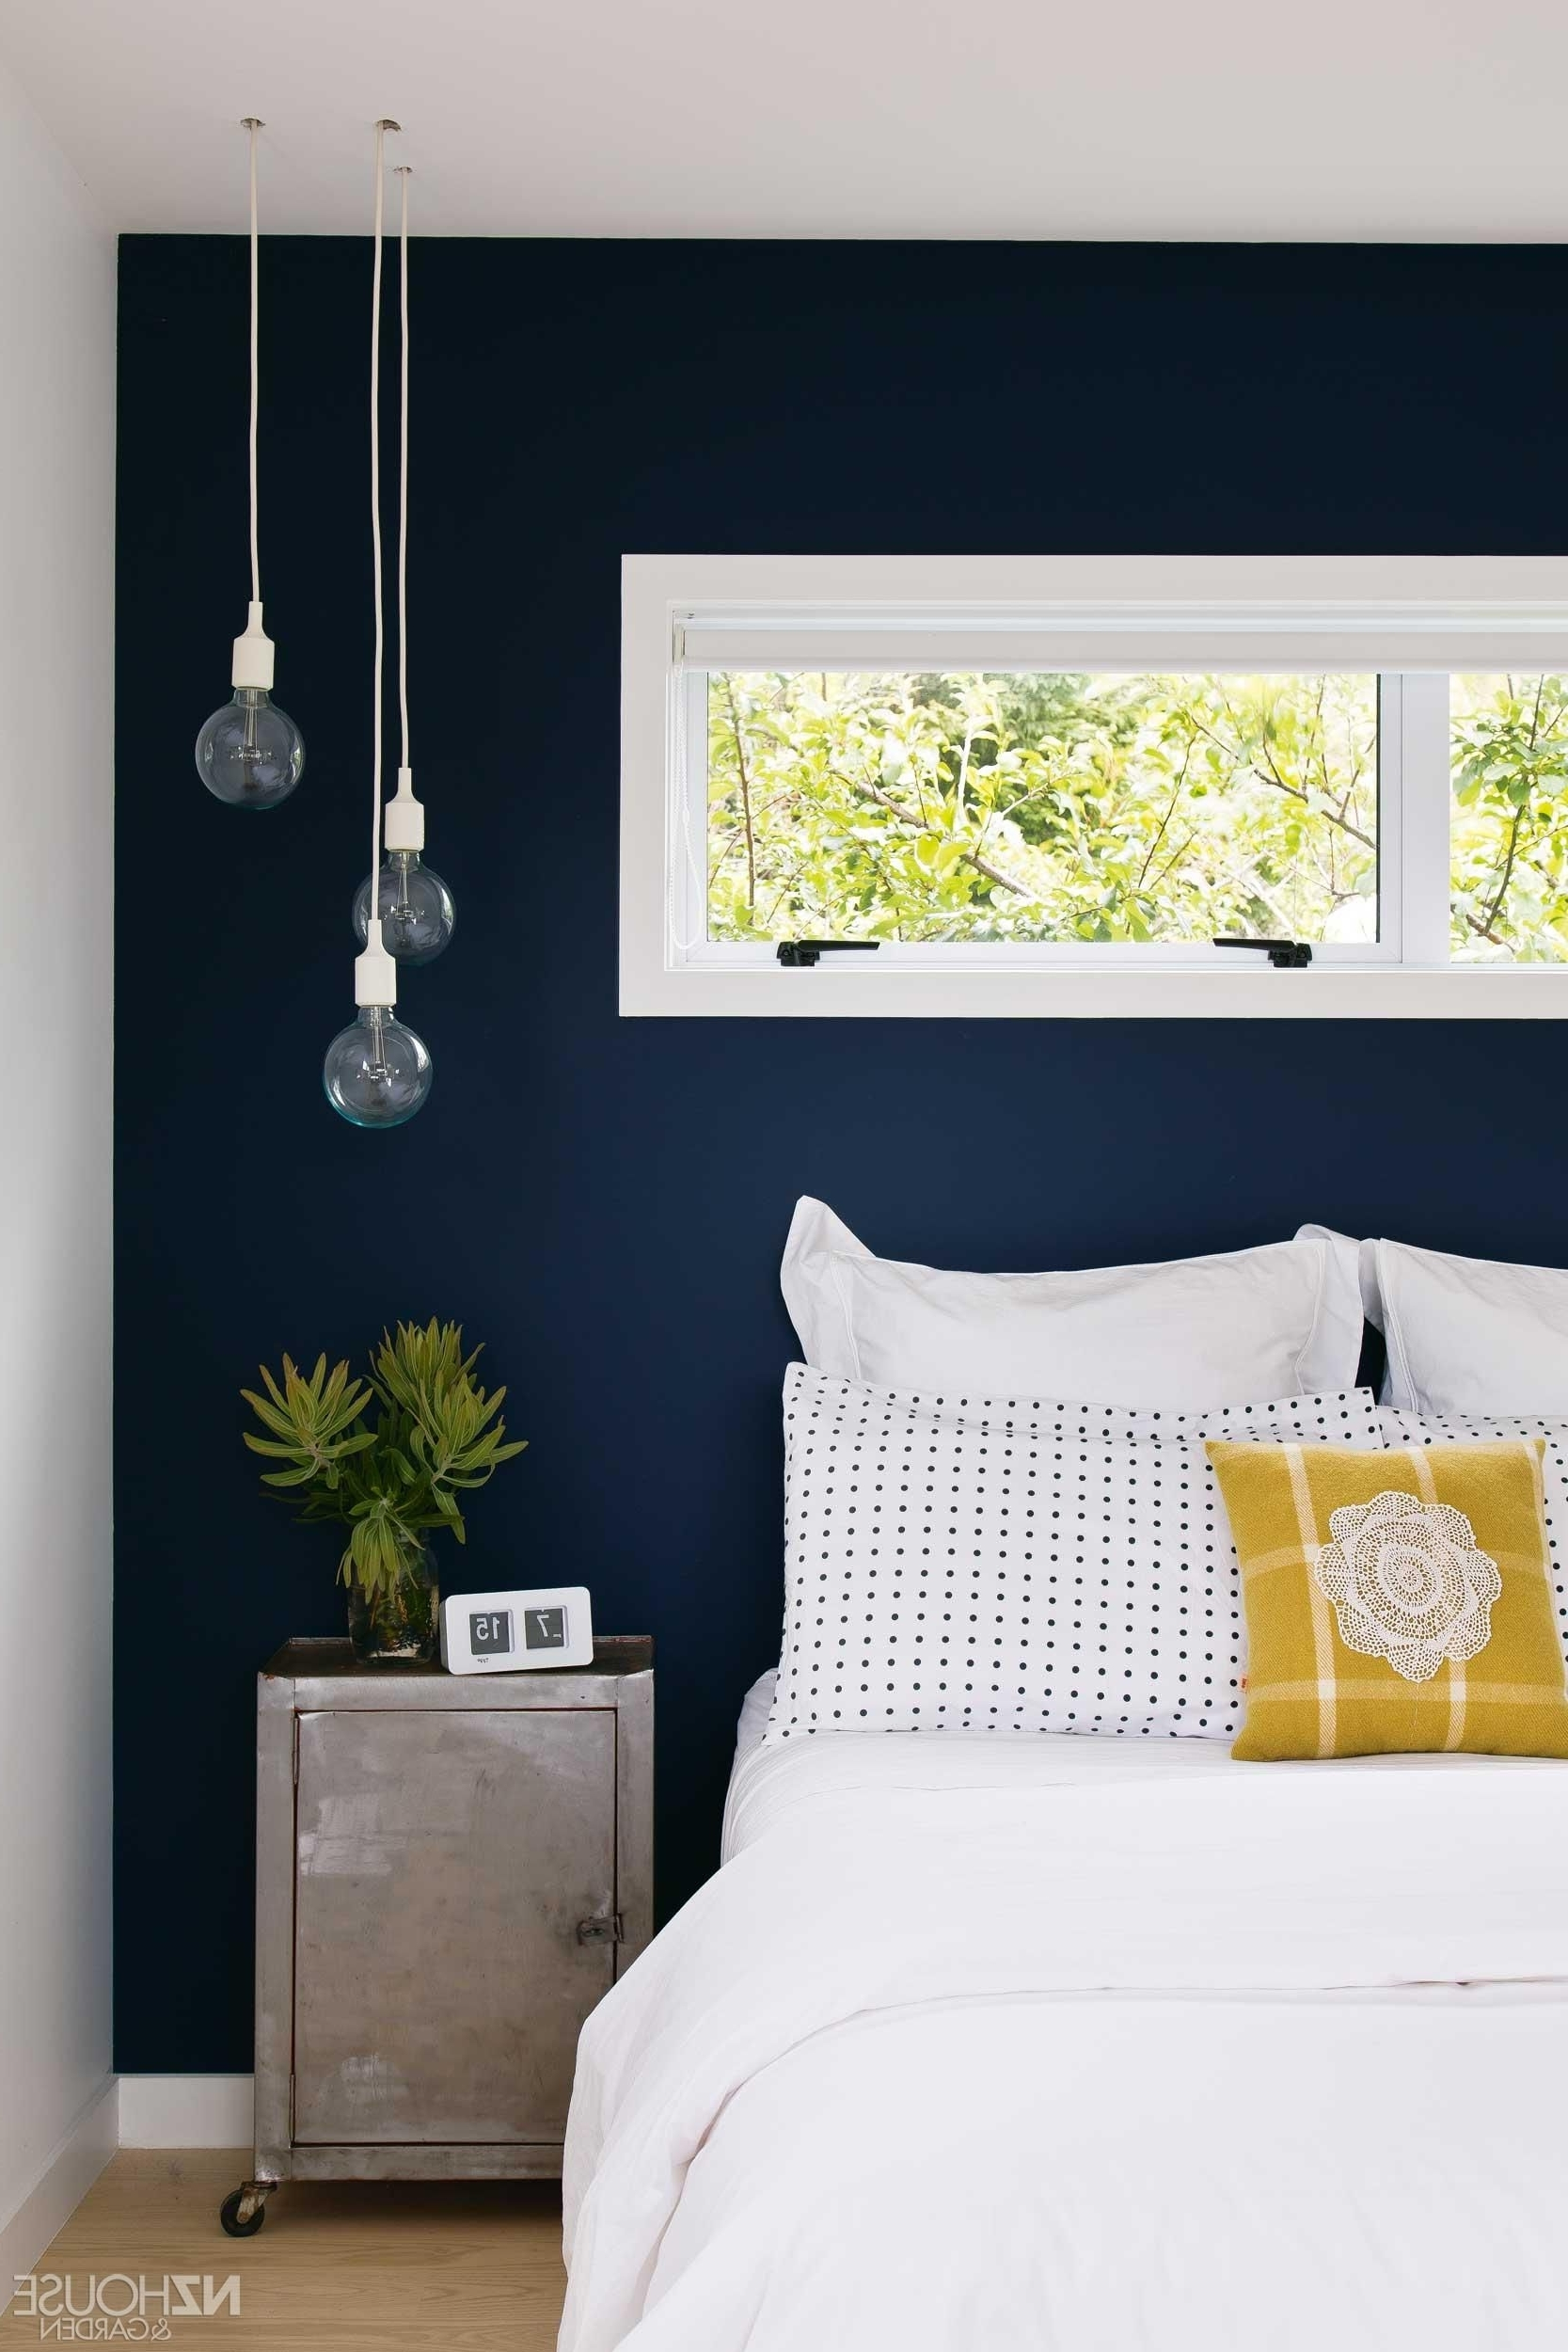 20+ Accent Wall Ideas You'll Surely Wish To Try This At Home Regarding Most Recent Wall Accents For Yellow Room (View 1 of 15)